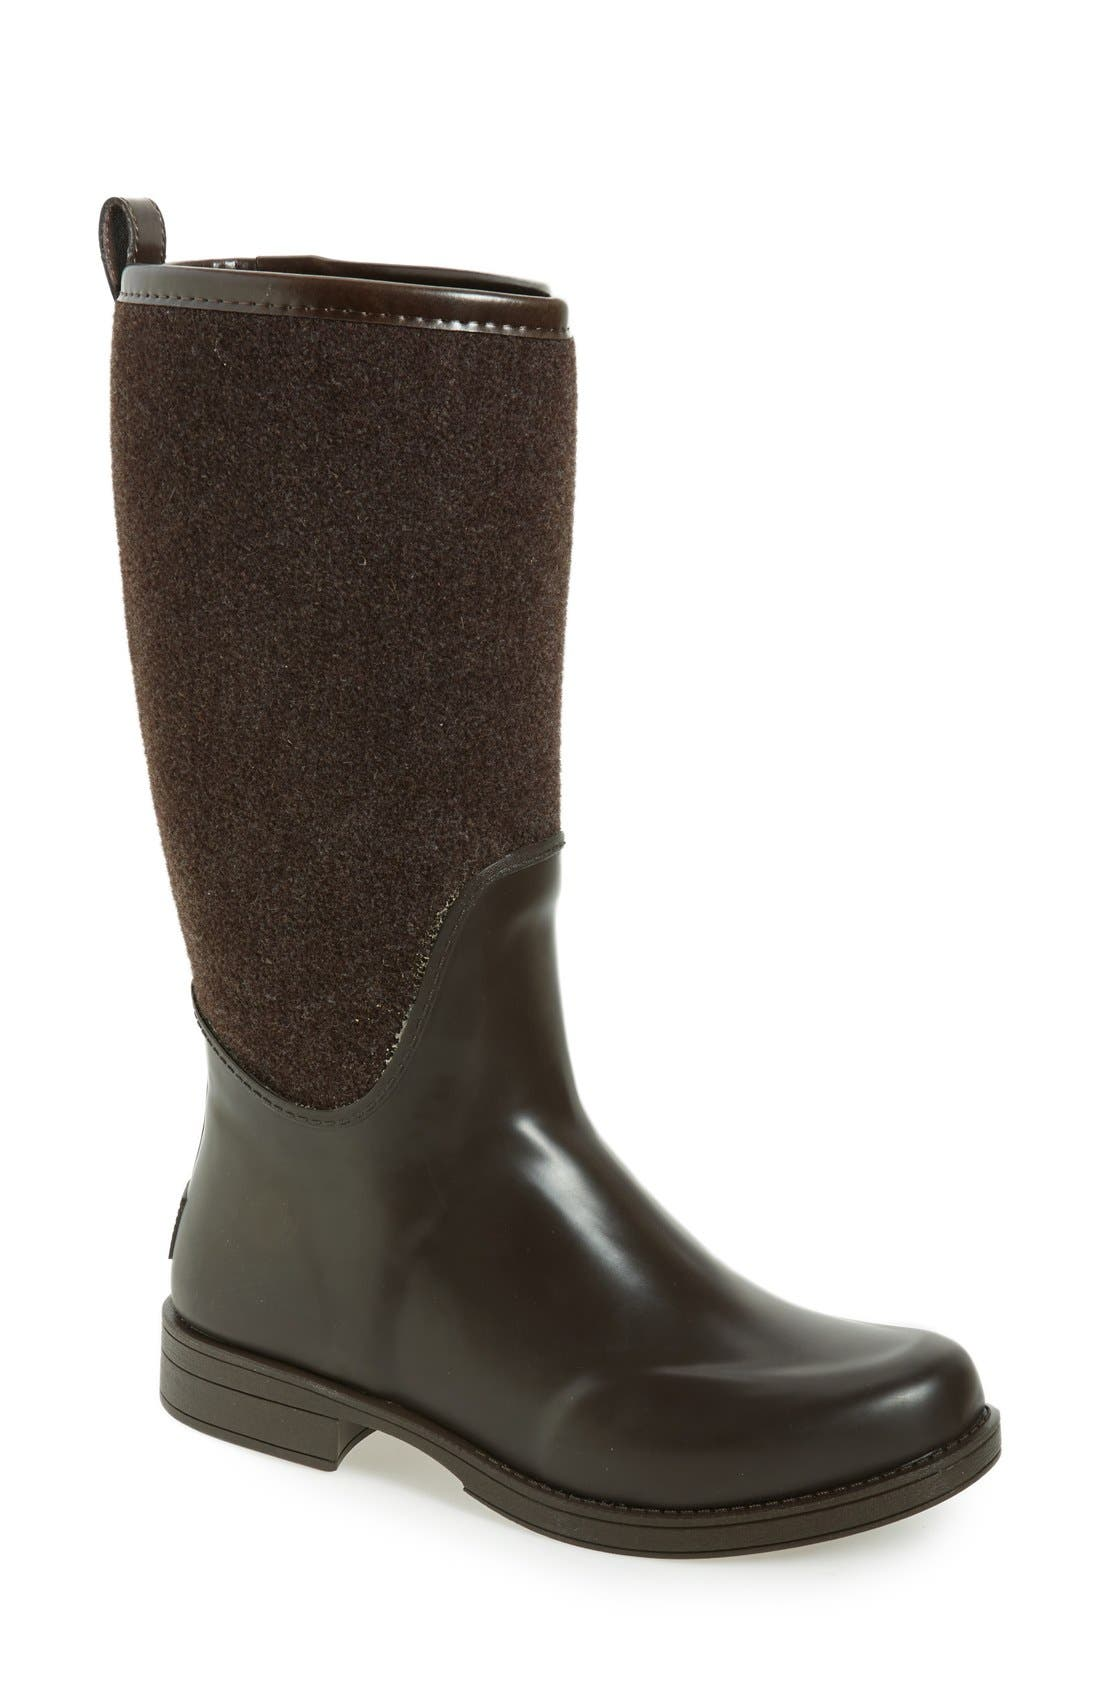 Alternate Image 1 Selected - UGG® Reignfall Waterproof Rain Boot (Women)